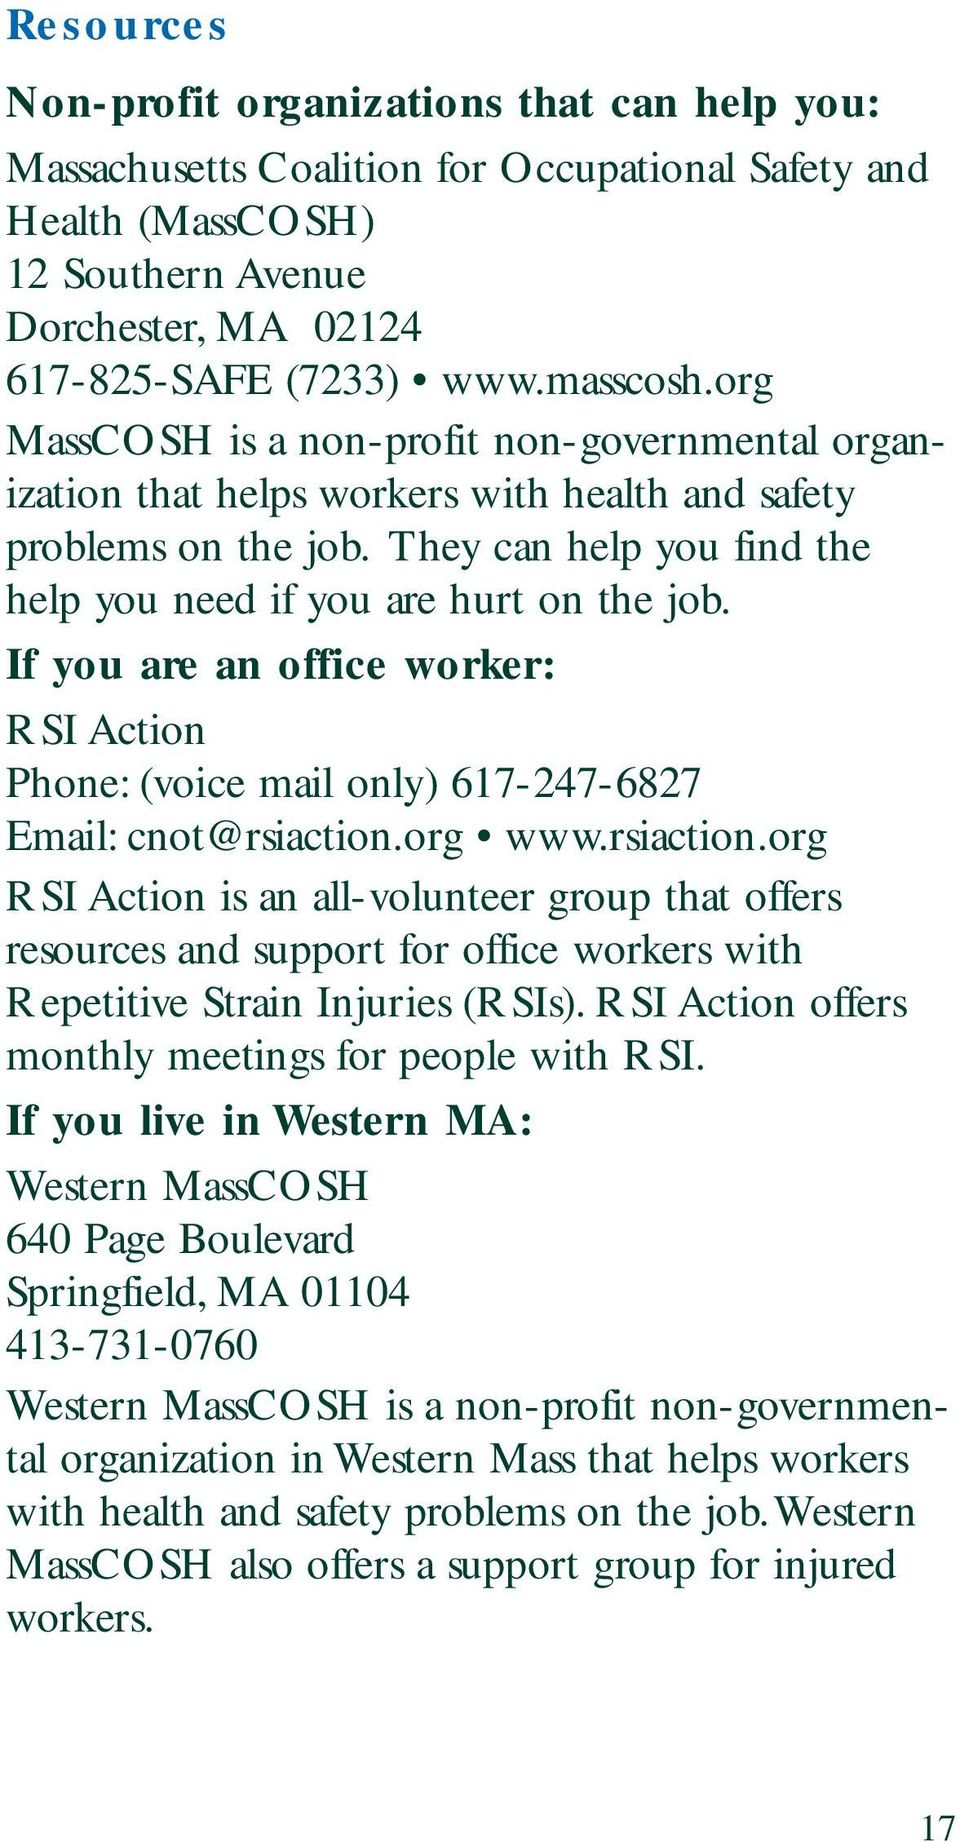 If you are an office worker: RSI Action Phone: (voice mail only) 617-247-6827 Email: cnot@rsiaction.